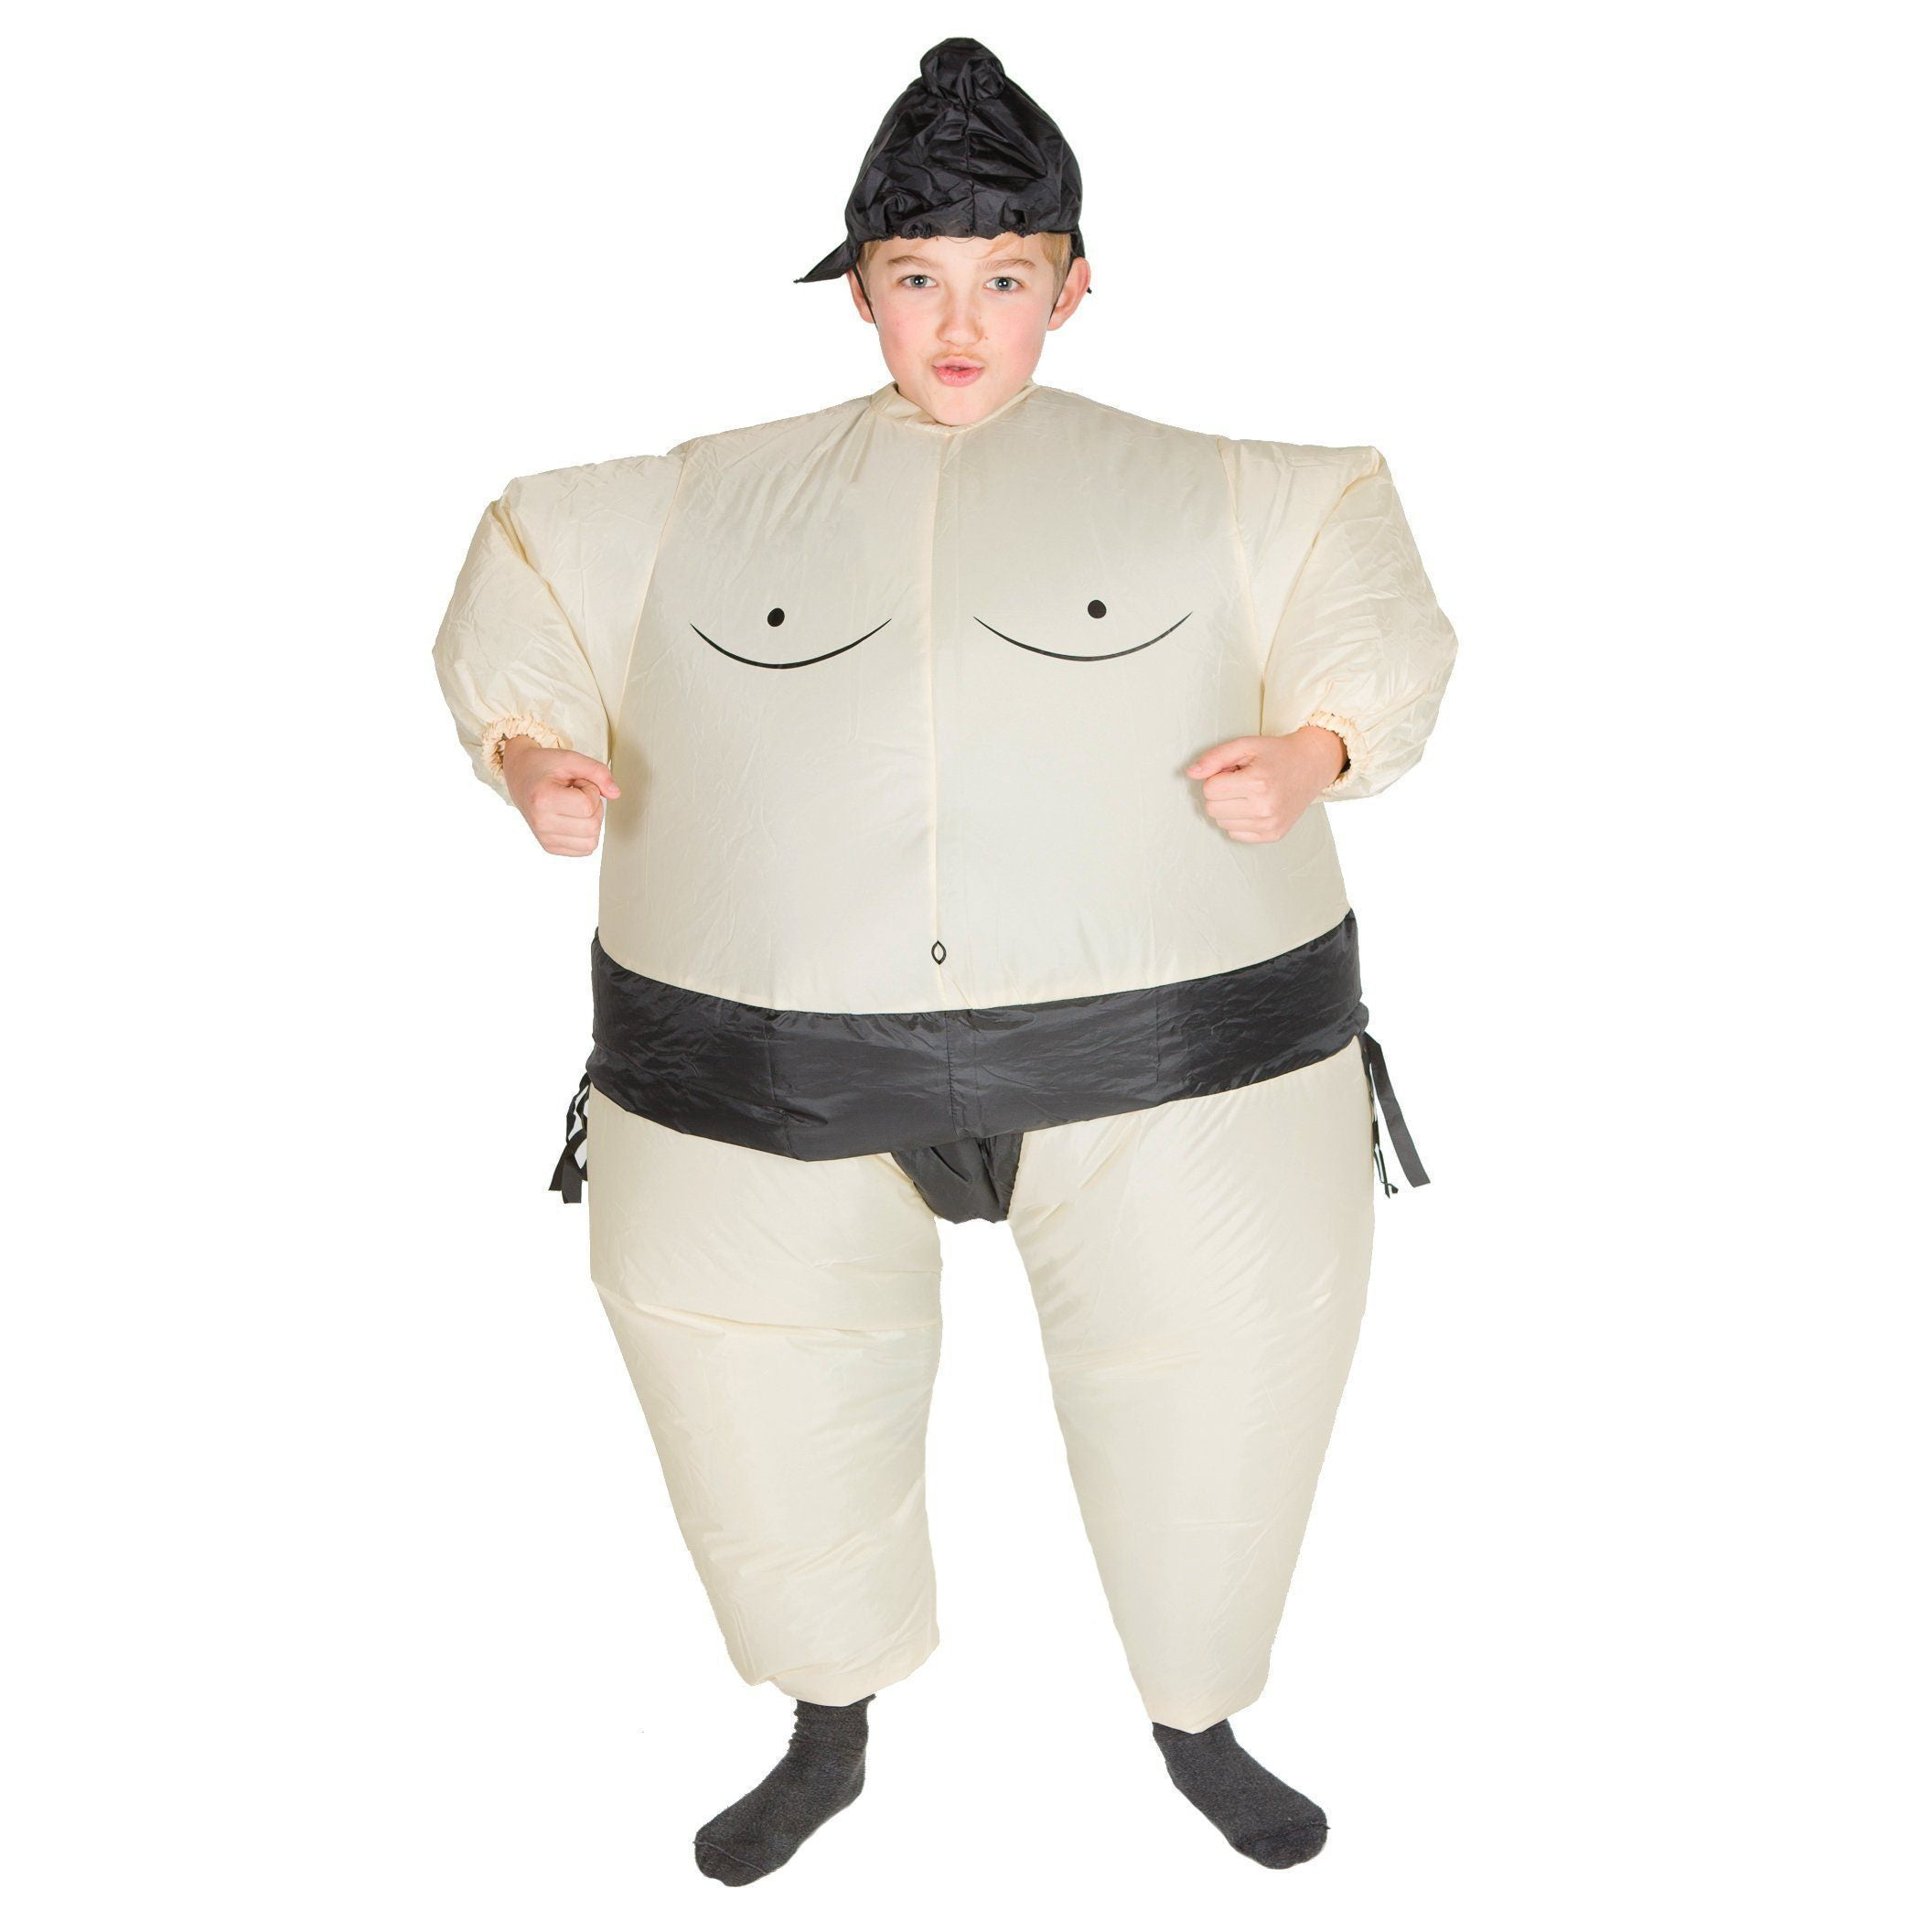 Fancy Dress - Kids Inflatable Sumo Wrestler Costume